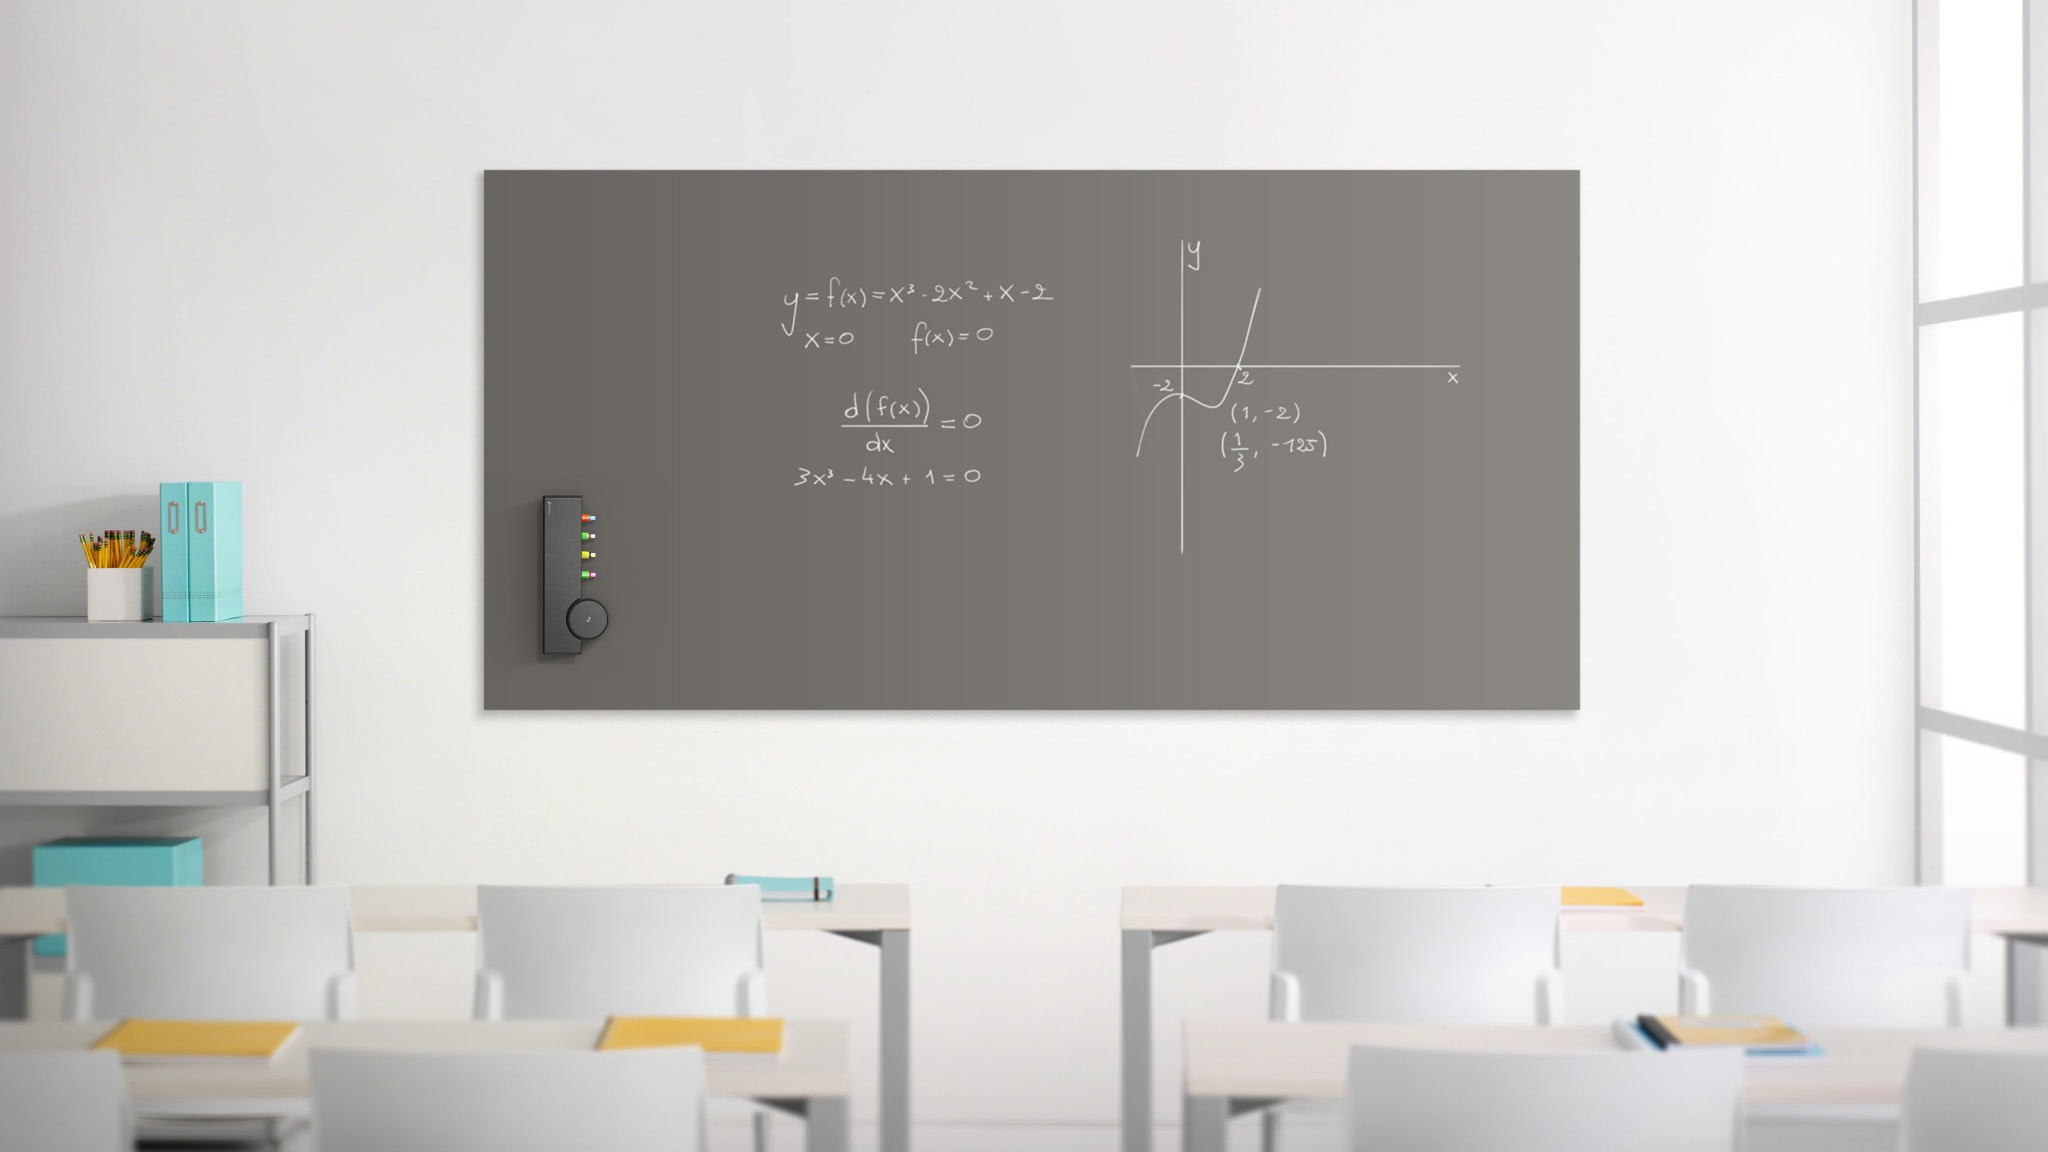 Grey chalkboard at the front of a classroom with a graph and algebra equation written on it